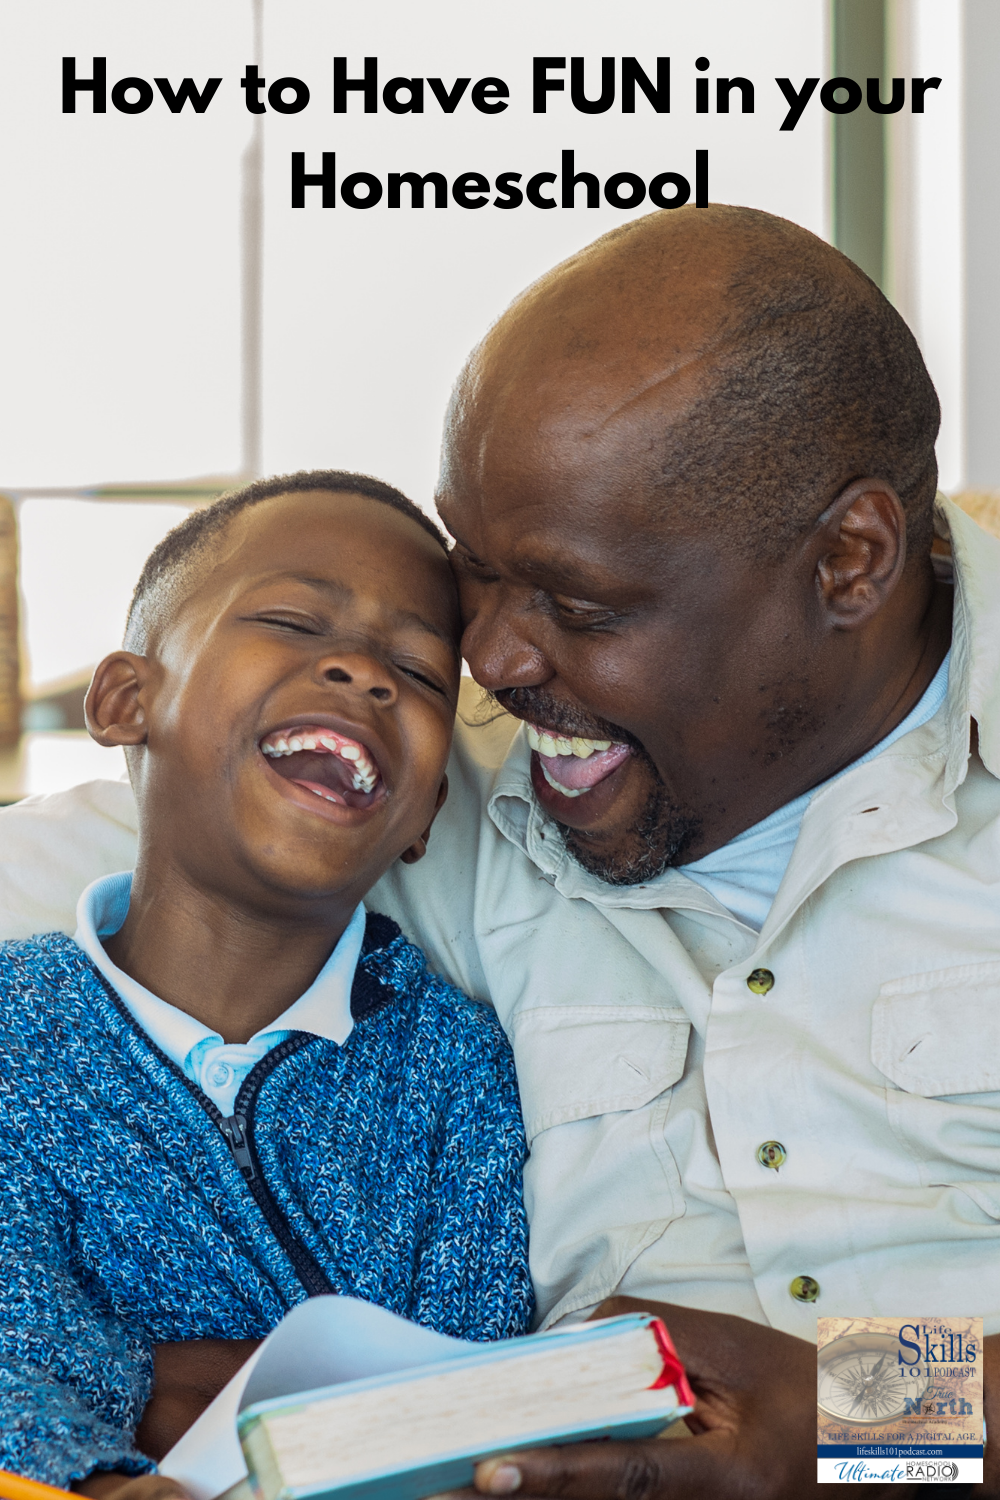 Laugher really is the best medicine, and honestly an important life skill to teach our kids.